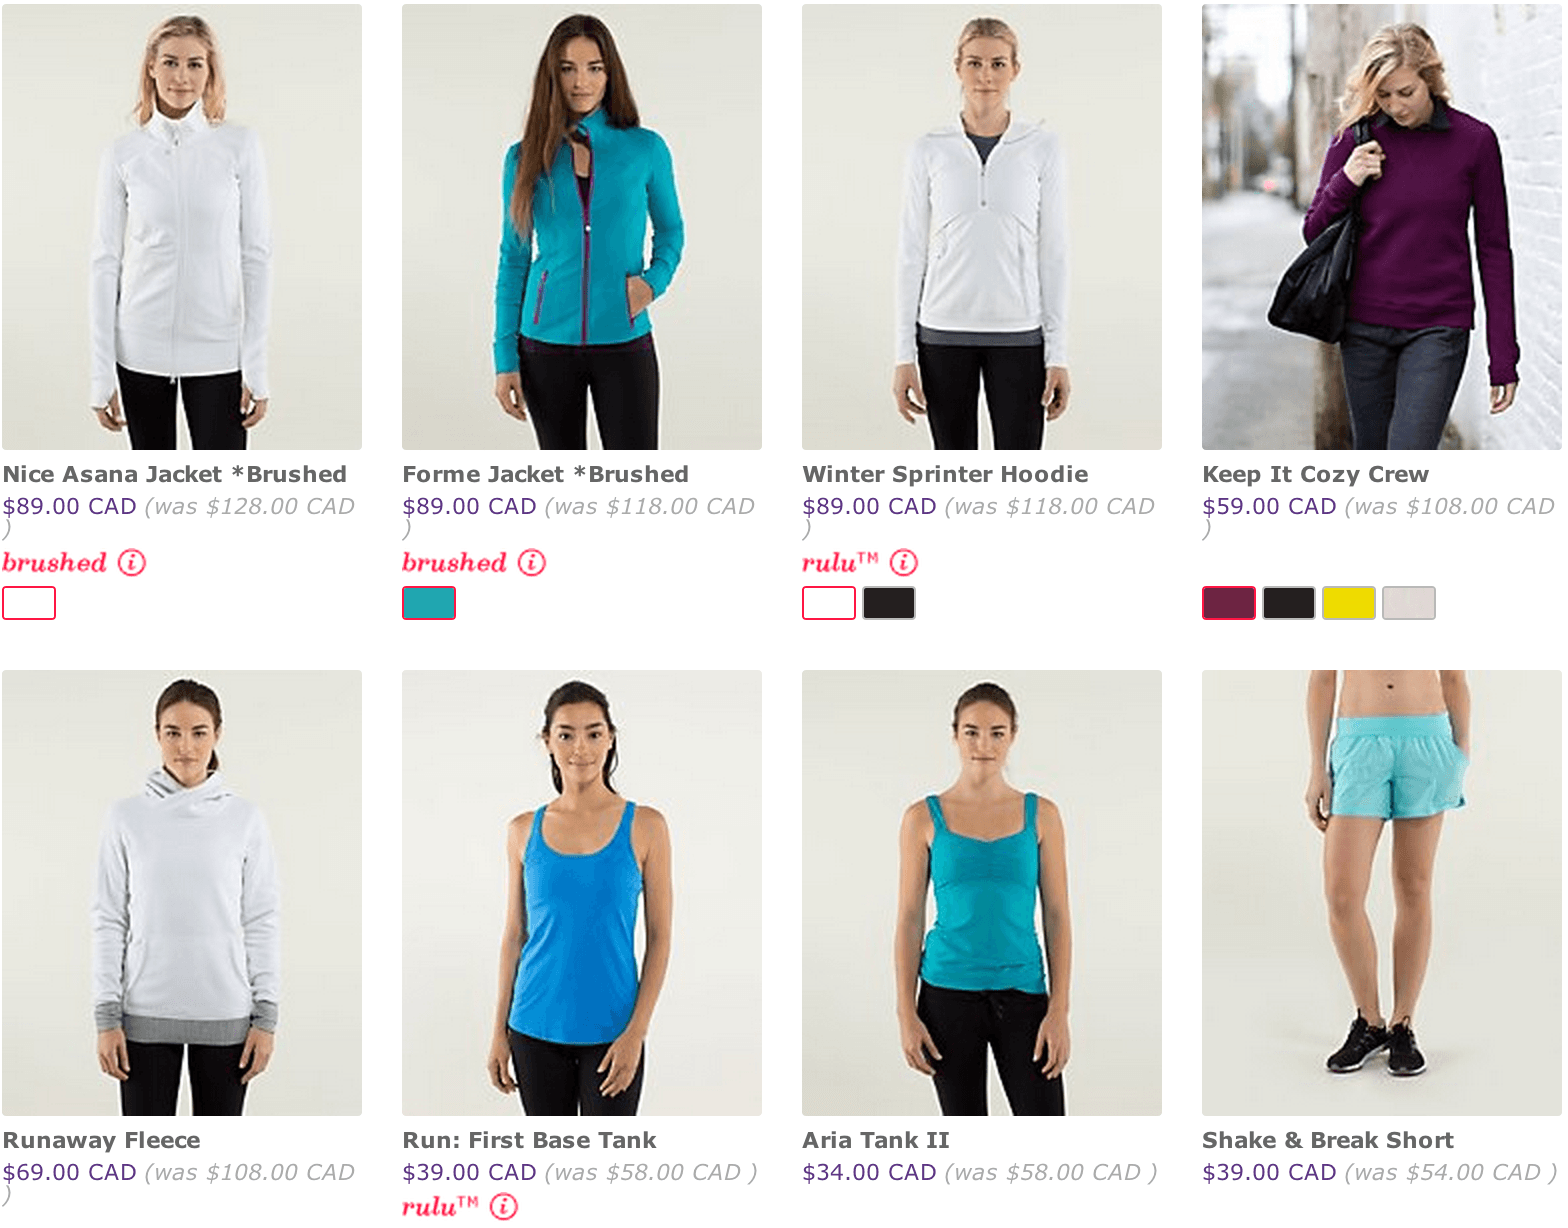 Poshmark makes shopping fun, affordable & easy!Posh Protect · day priority shipping · Fashion at 70% offTypes: Yoga Wear, Sports Wear, Fitness Wear, Running Wear, Bras, Leggings, Tops.